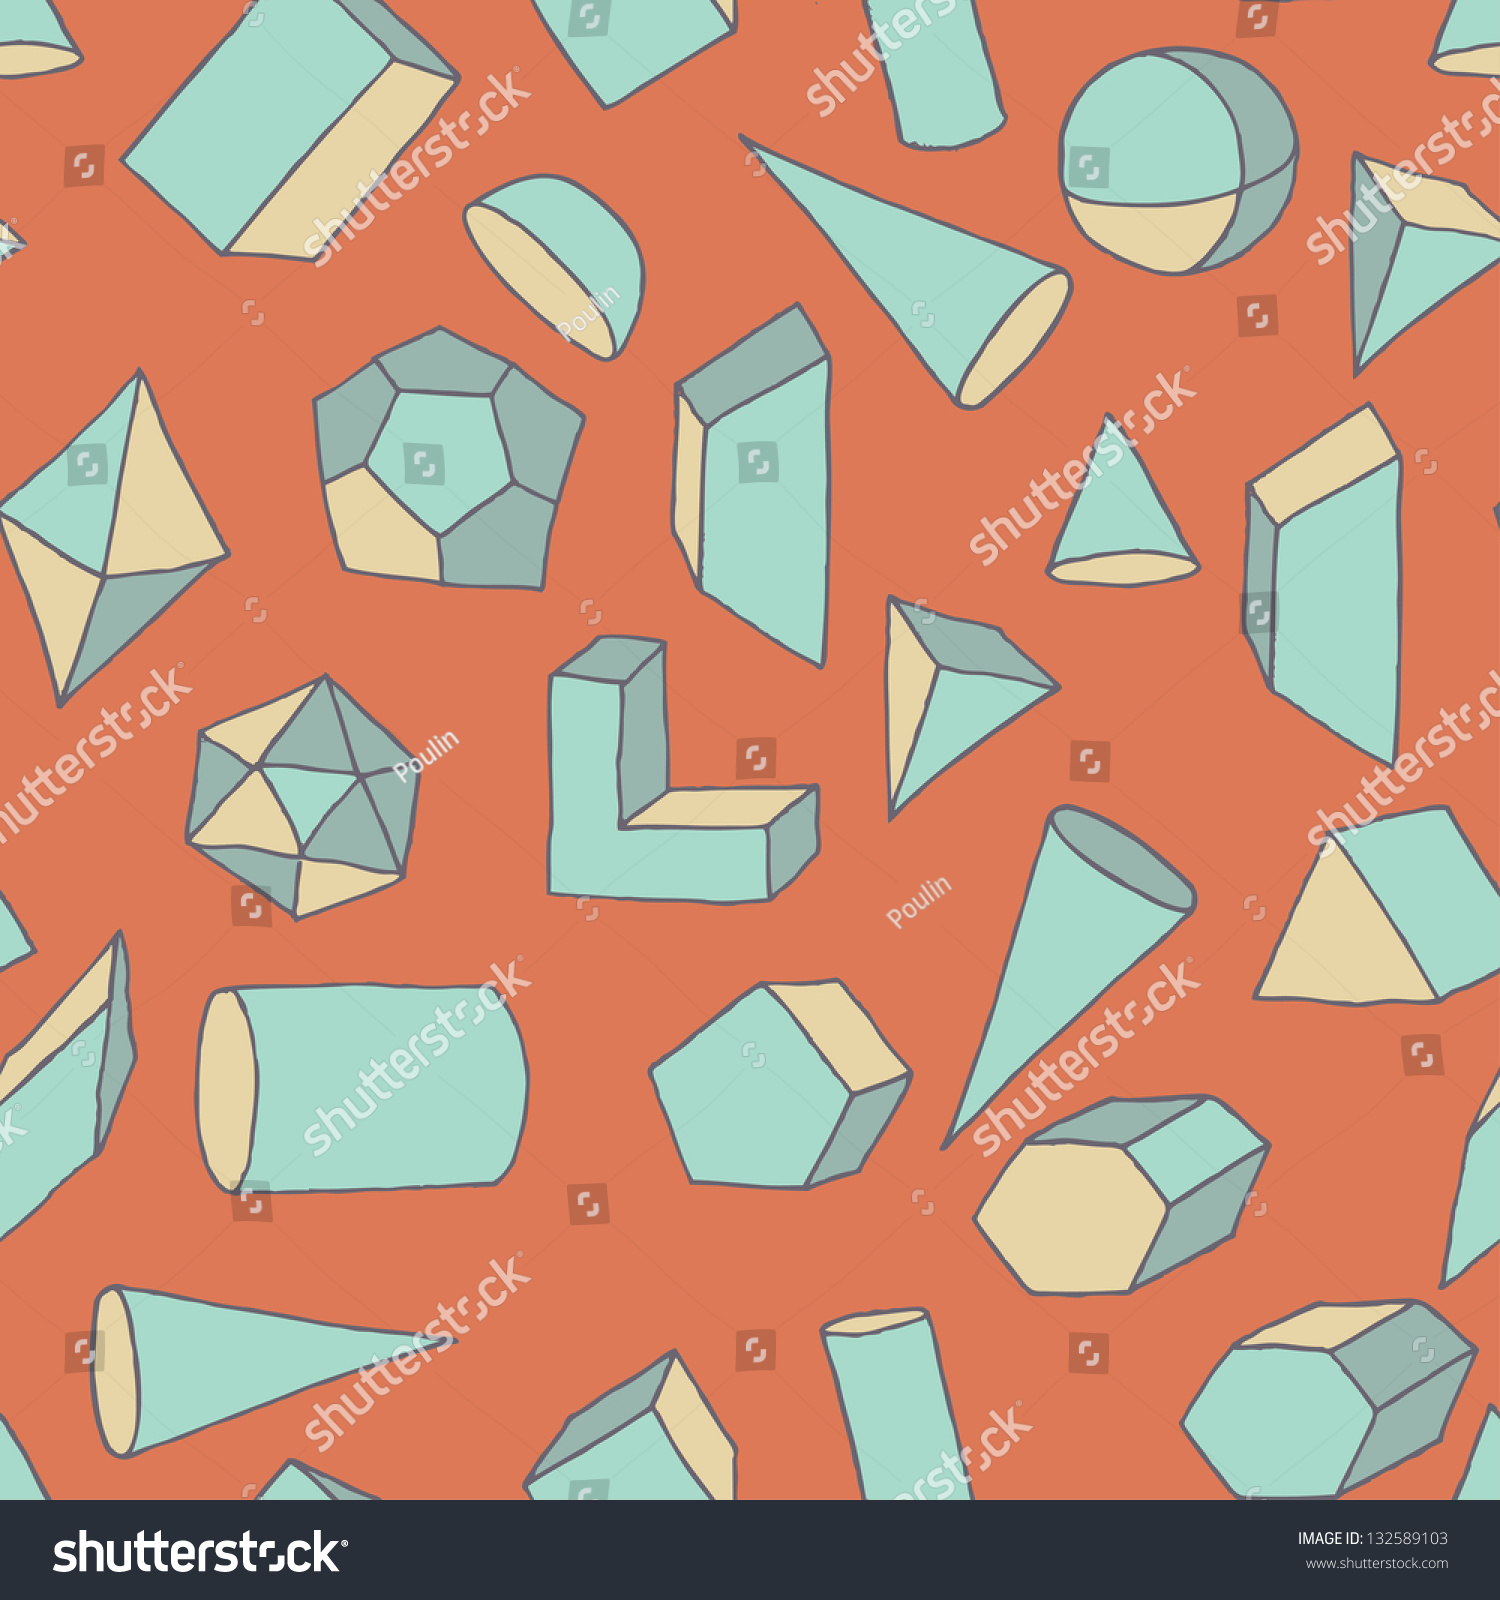 Wallpapers pattern fills web page backgrounds surface textures - Seamless Pattern Can Be Used For Wallpaper Pattern Fills Web Page Background Surface